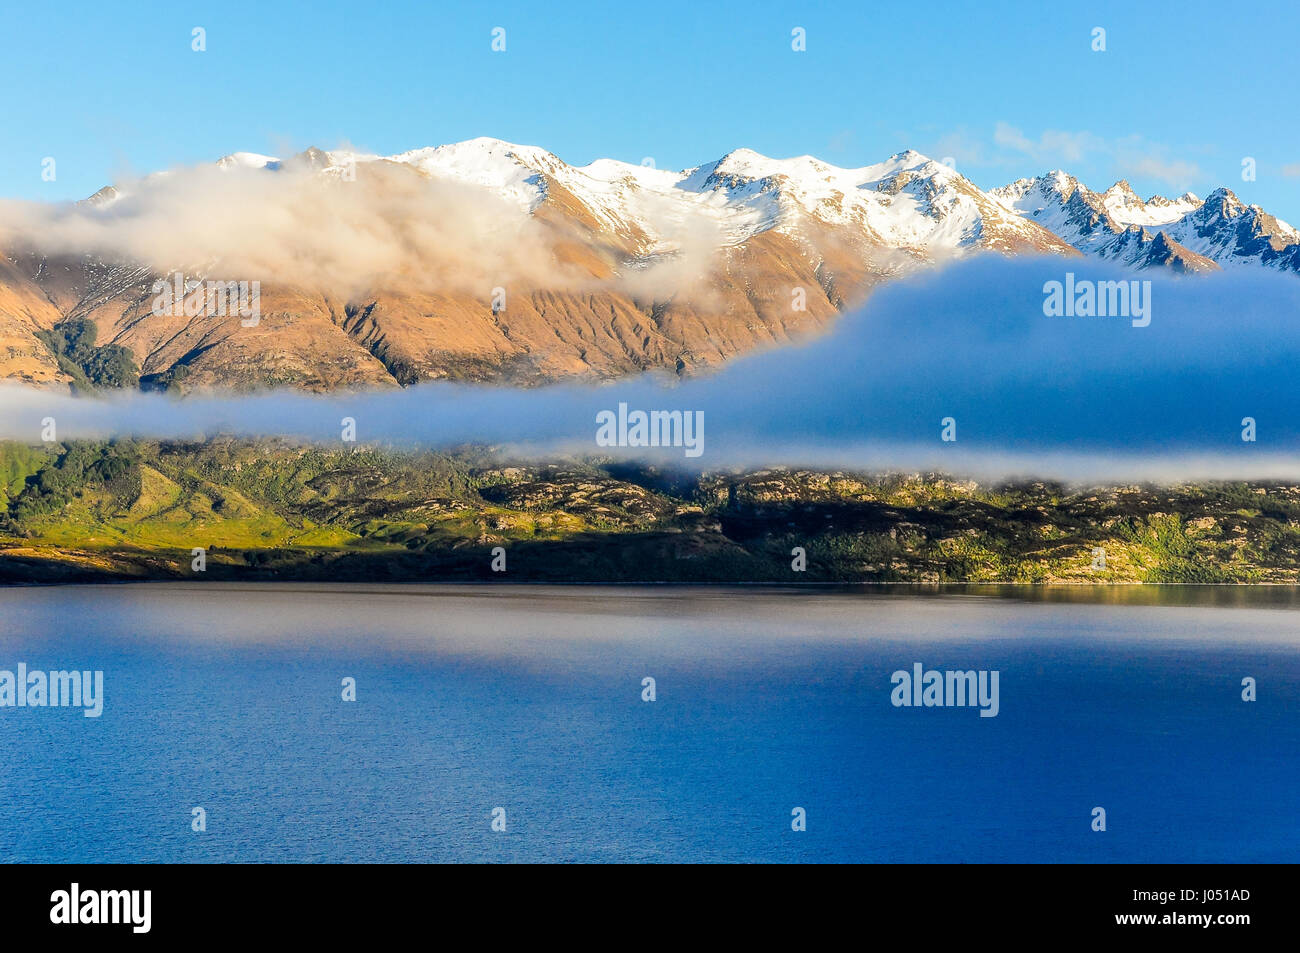 Clouds over the lake in Lord of the Rings film location, Glenorchy, New Zealand - Stock Image